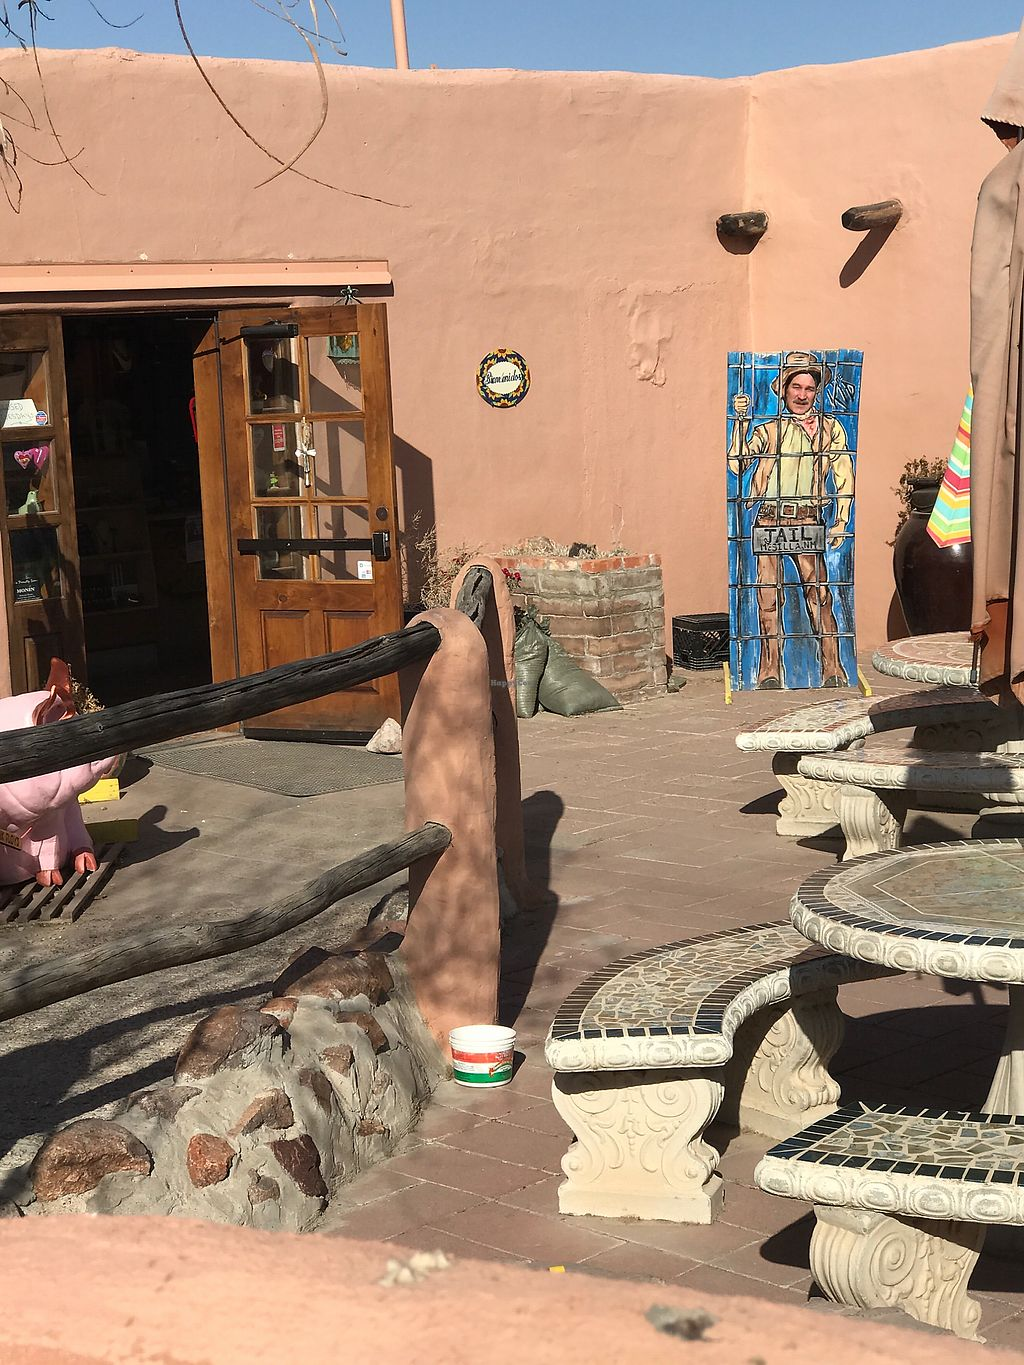 """Photo of Cafe de Mesilla  by <a href=""""/members/profile/avascott"""">avascott</a> <br/>Fun atmosphere  <br/> April 4, 2018  - <a href='/contact/abuse/image/115244/380853'>Report</a>"""